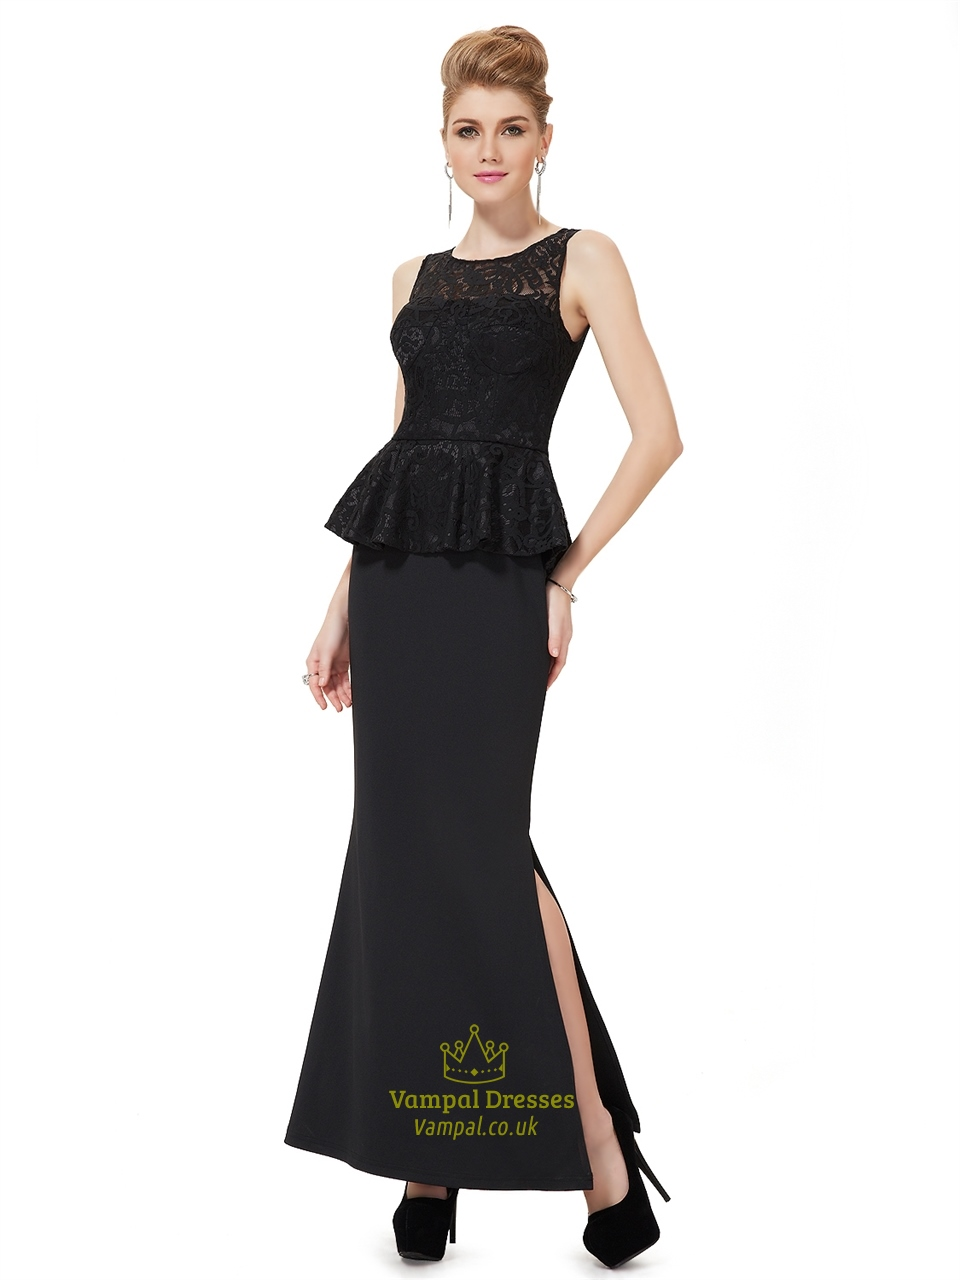 Black mermaid peplum style mother of the bride dresses for Peplum dresses for wedding guest